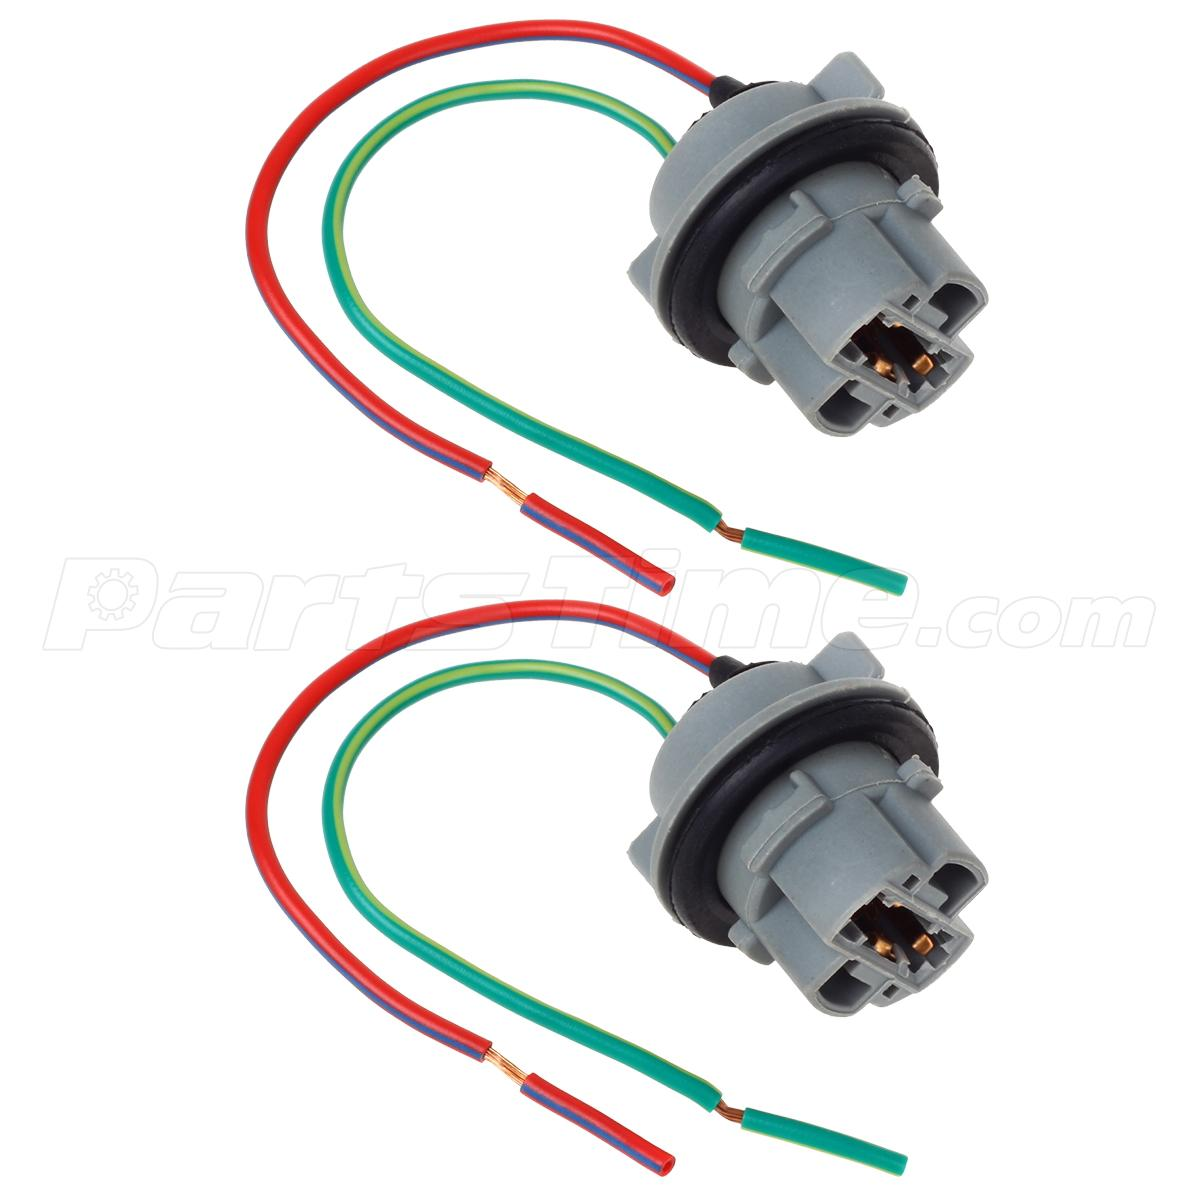 2x socket connector wire harness for brake signal light bulb 7440 t20 w21w ebay